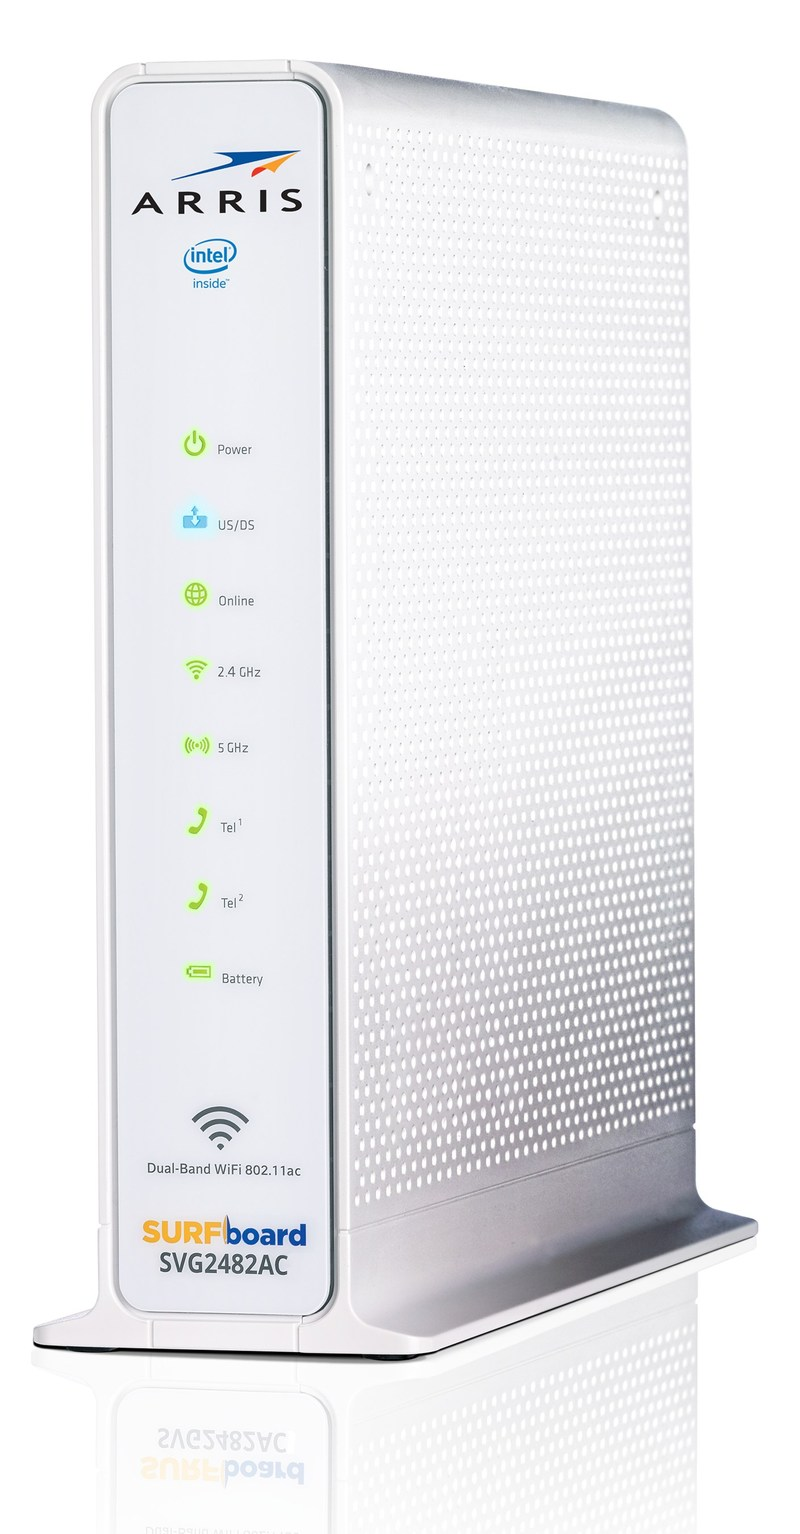 ARRIS SURFboard(R) SVG2482AC offers ultra-fast broadband, state-of-the-art Wi-Fi(R) and enhanced telephone functionality. The SURFboard(R) SVG2482AC becomes the first retail gateway with embedded RDK-B technology.